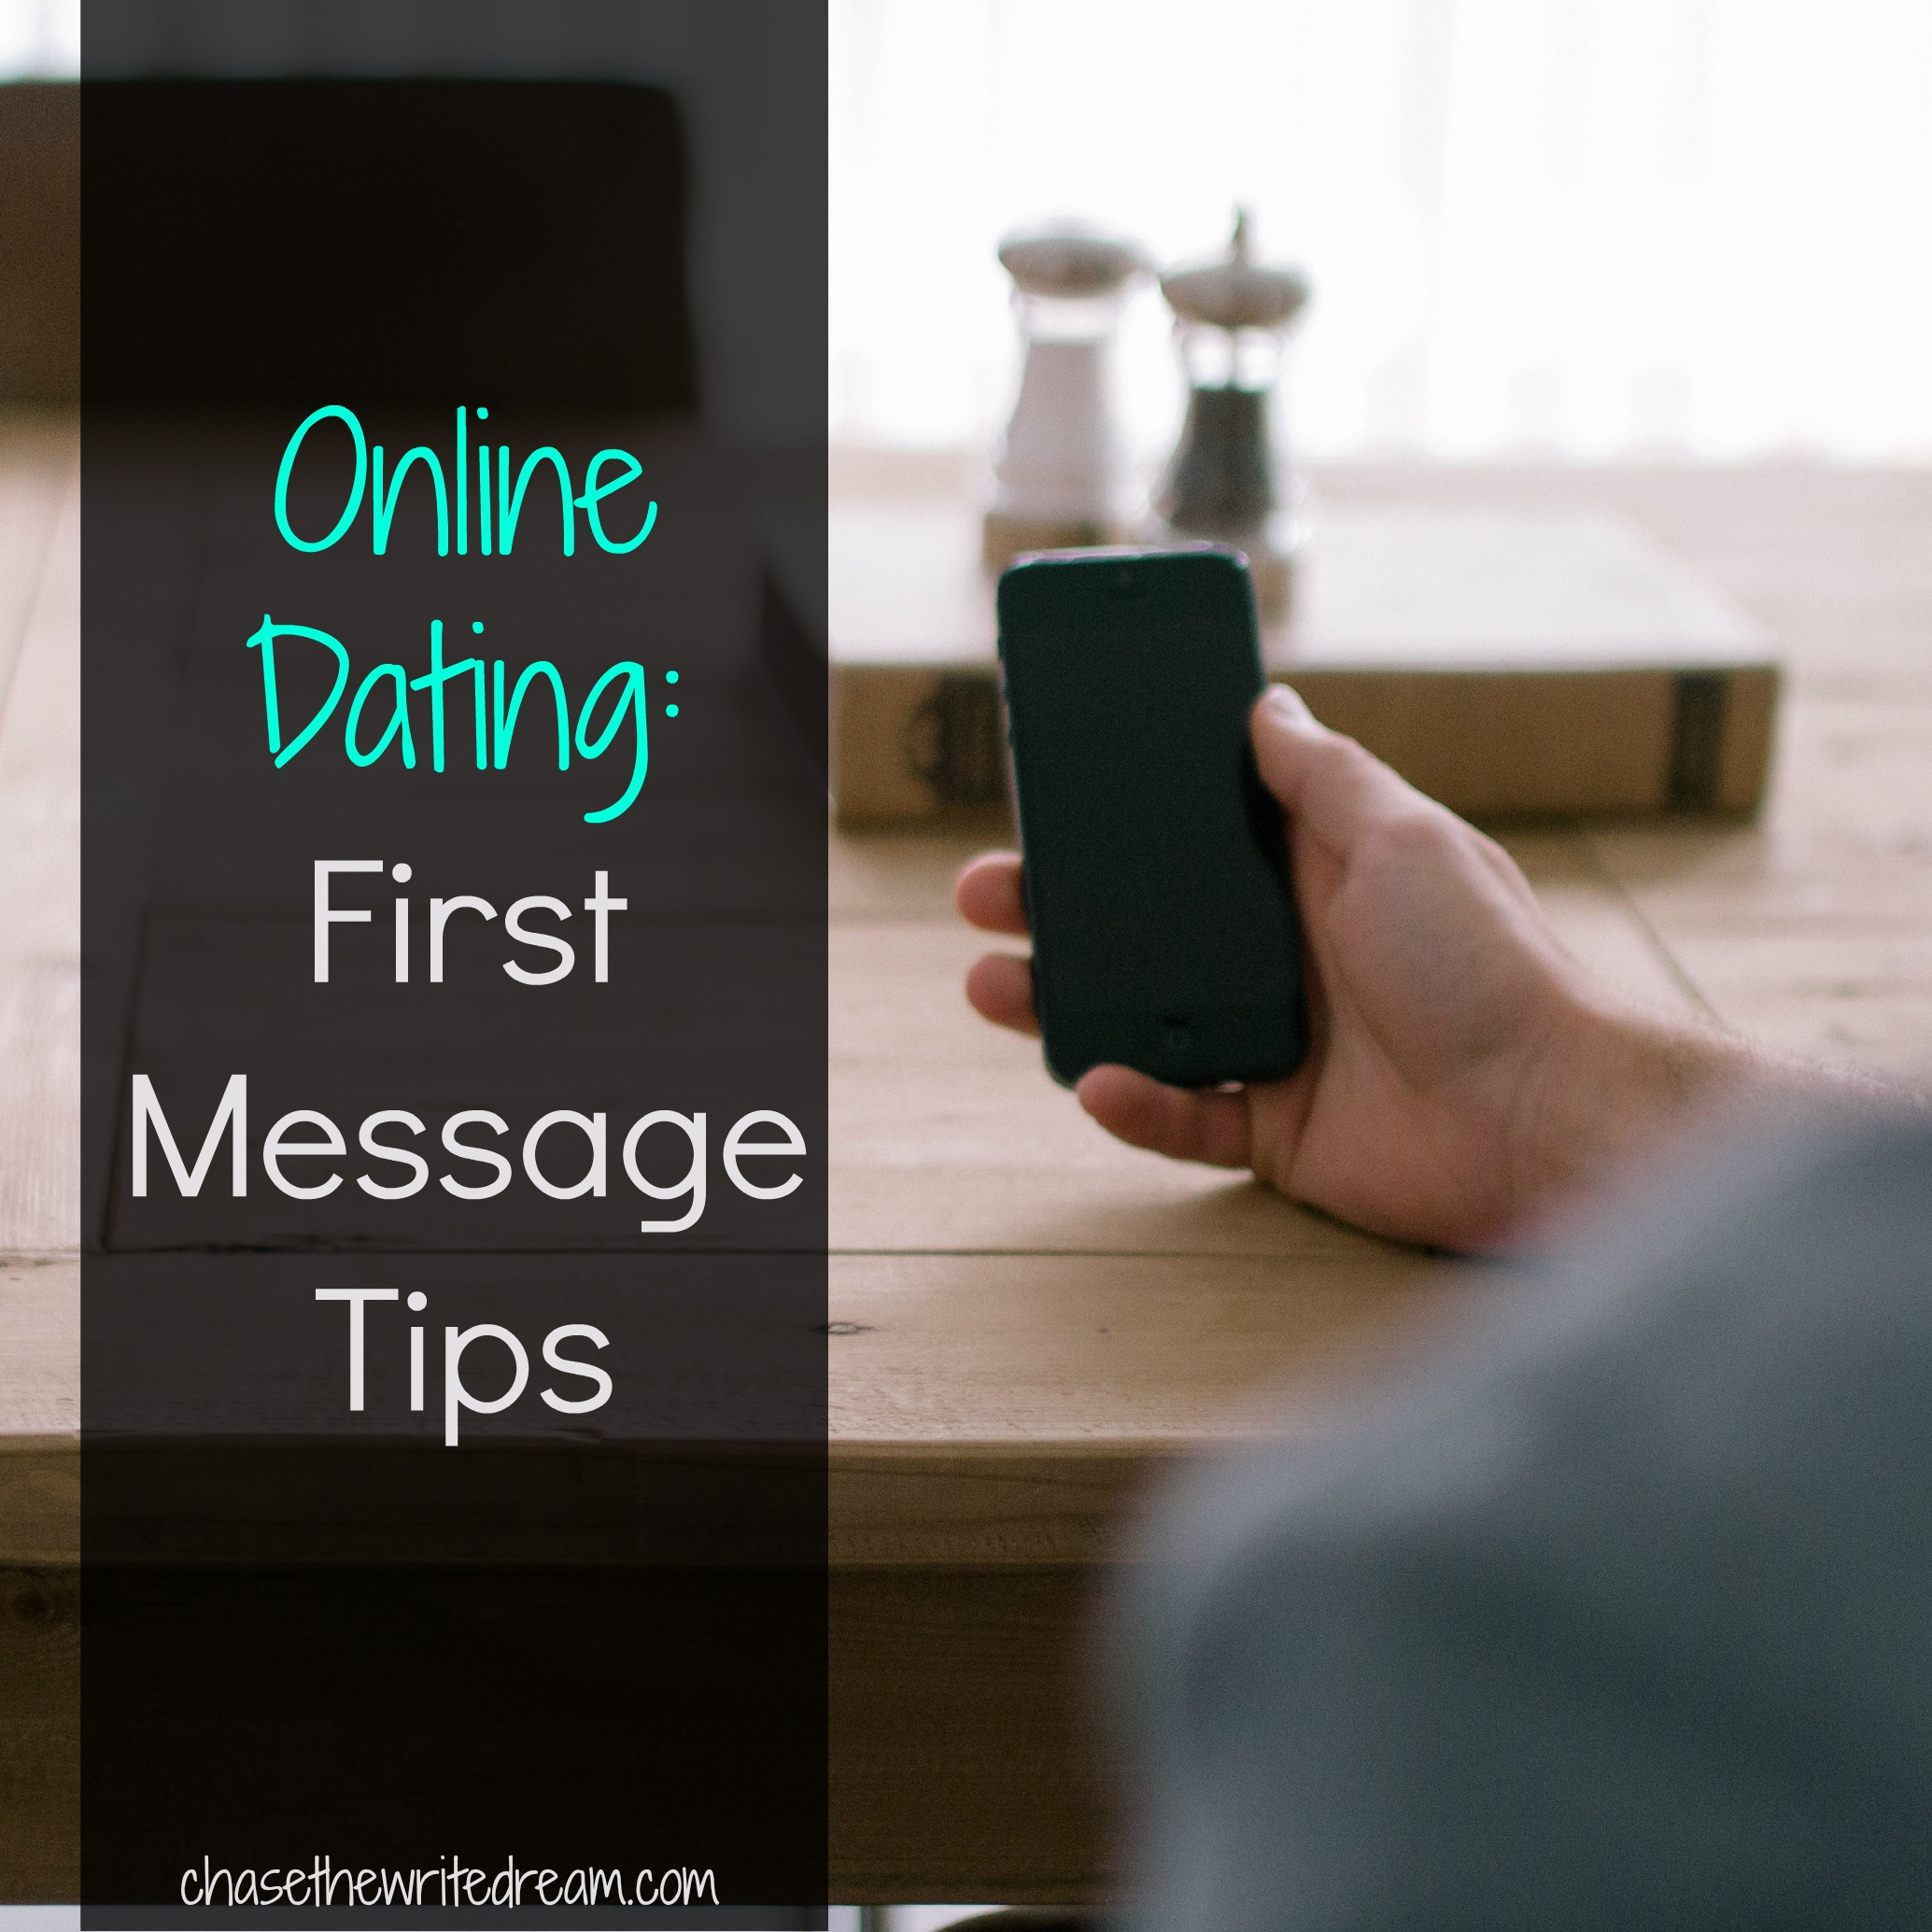 How to send first message online dating